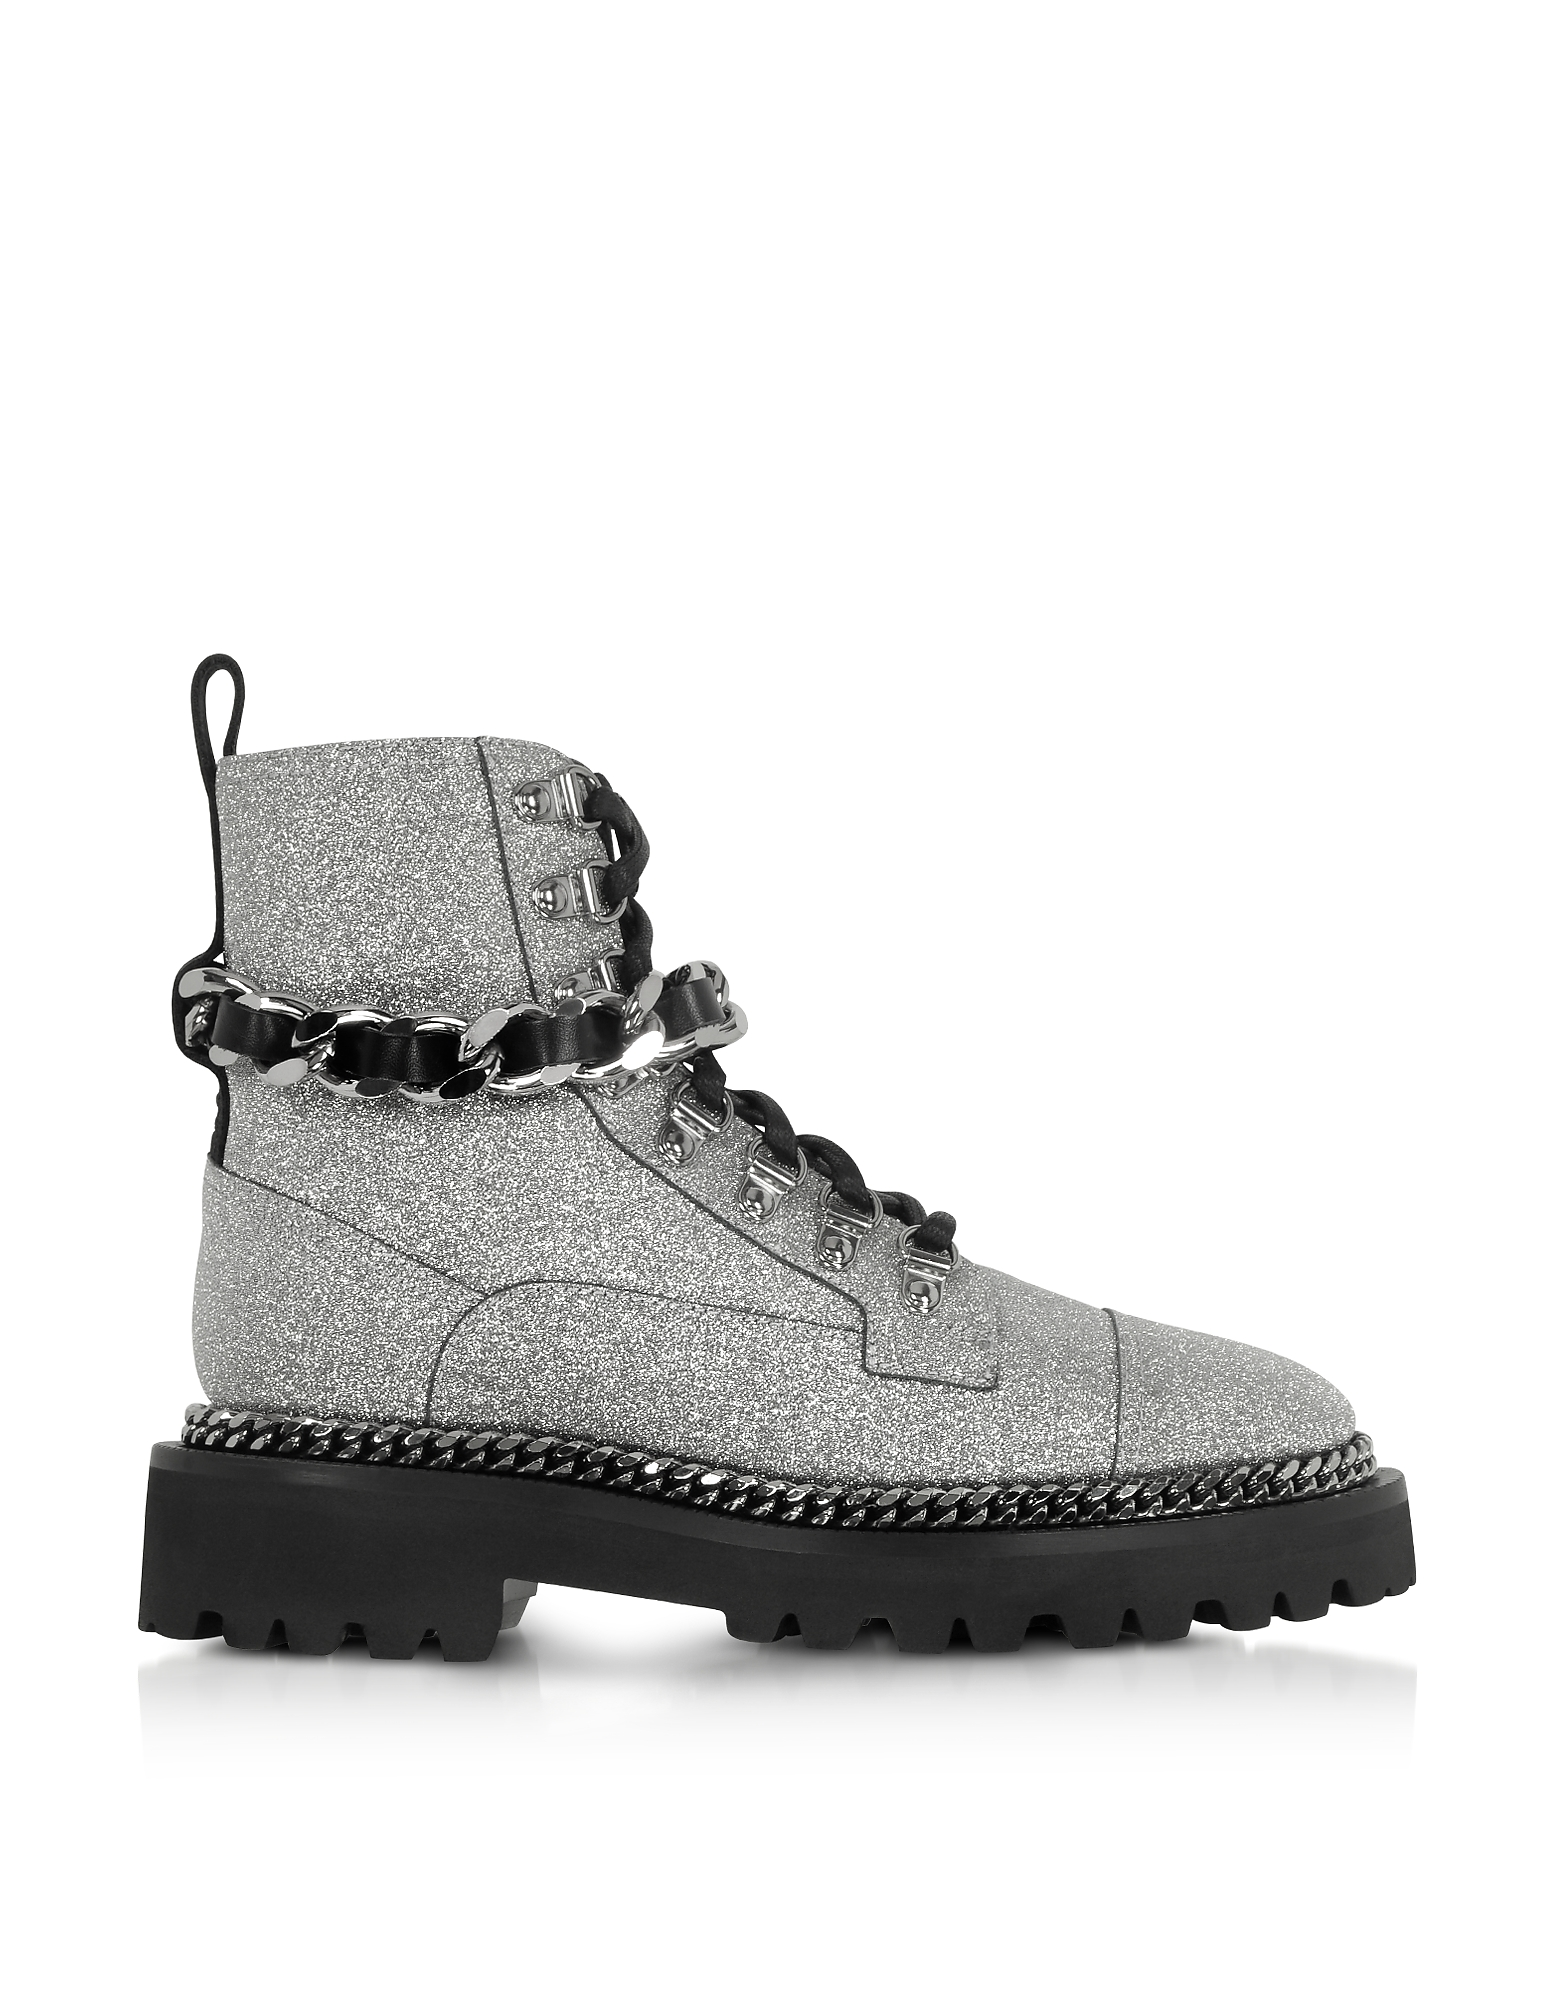 Army Boots Argento in Pelle Glitter